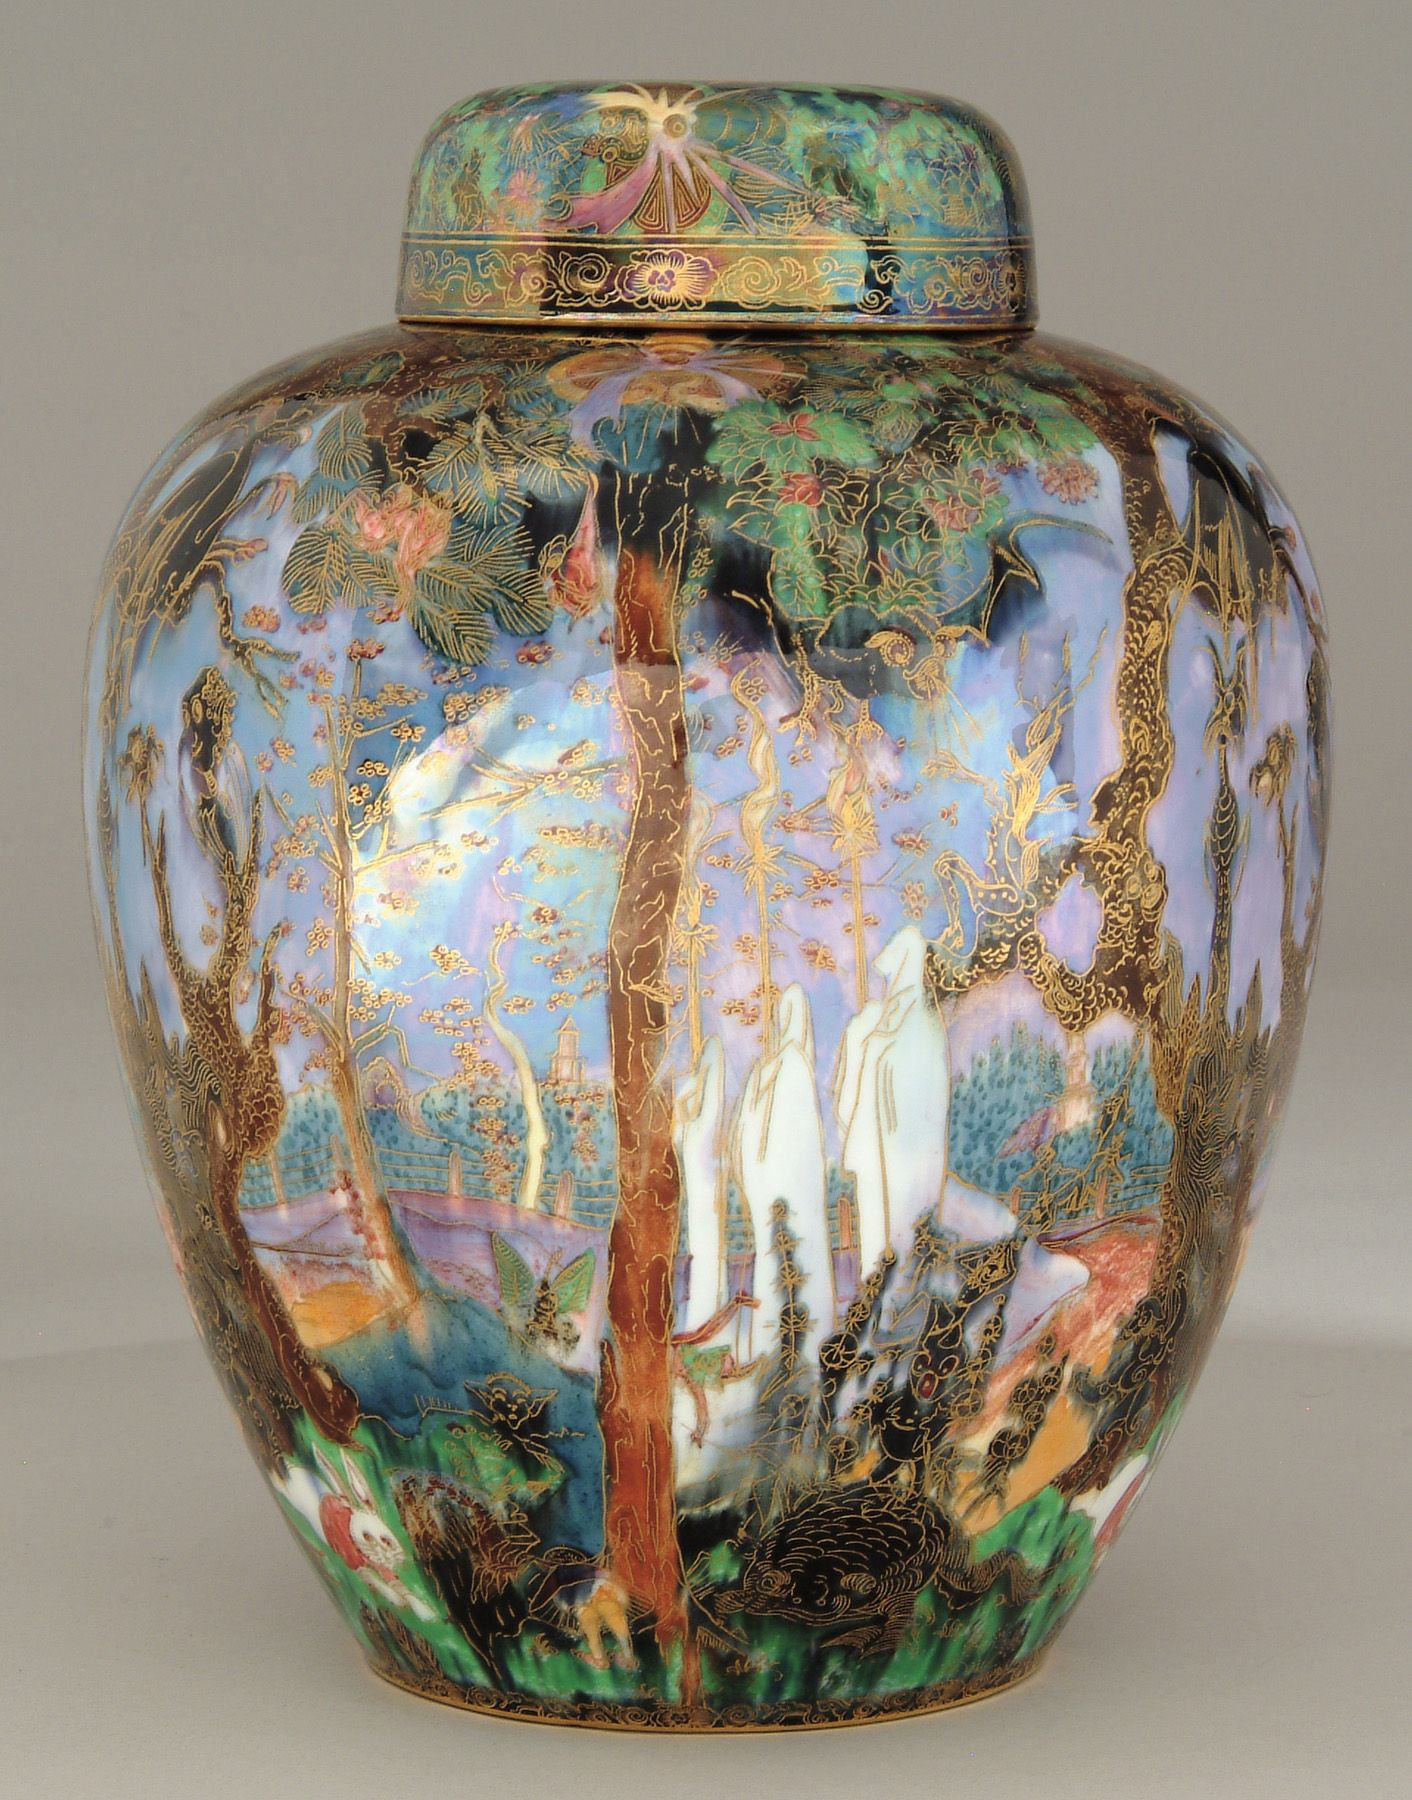 Rare wedgwood fairyland lustre ghostly woods malfrey pot wedgewood fairyland lustre demon tree vase showing menacing creatures hanging out in the large black trees this is one of the more valuable wedgwood reviewsmspy